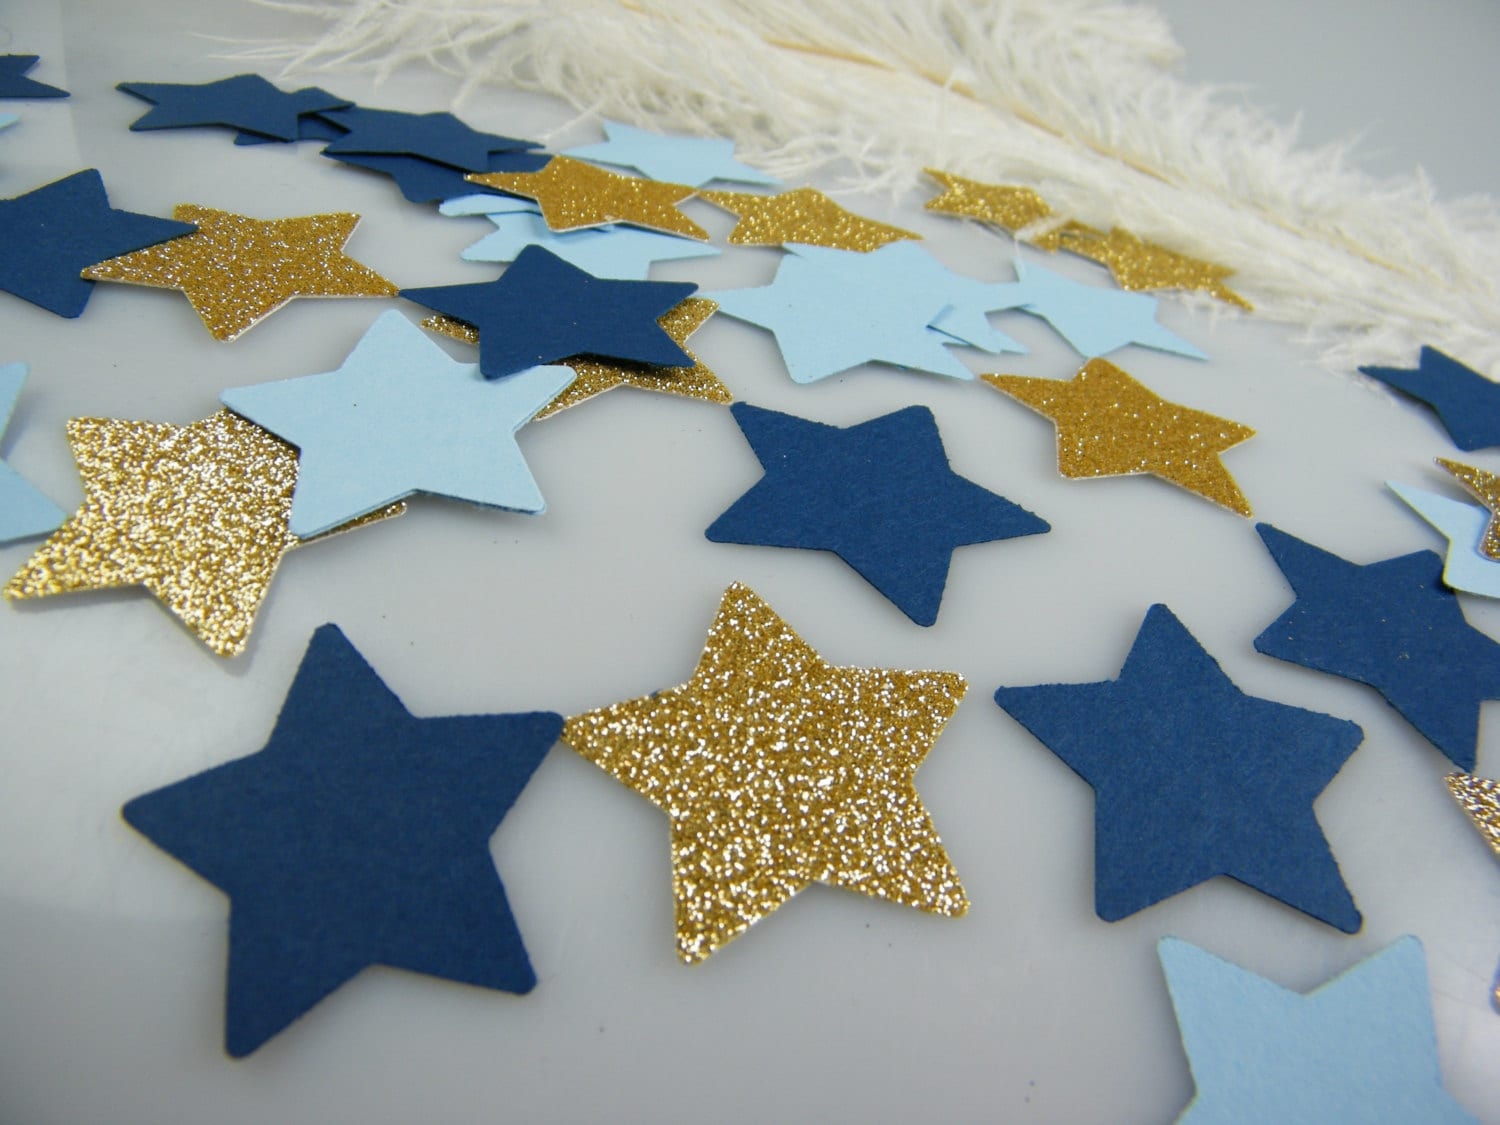 twinkle little star baby shower confetti gold blue party decoration pick your glitter color. Black Bedroom Furniture Sets. Home Design Ideas